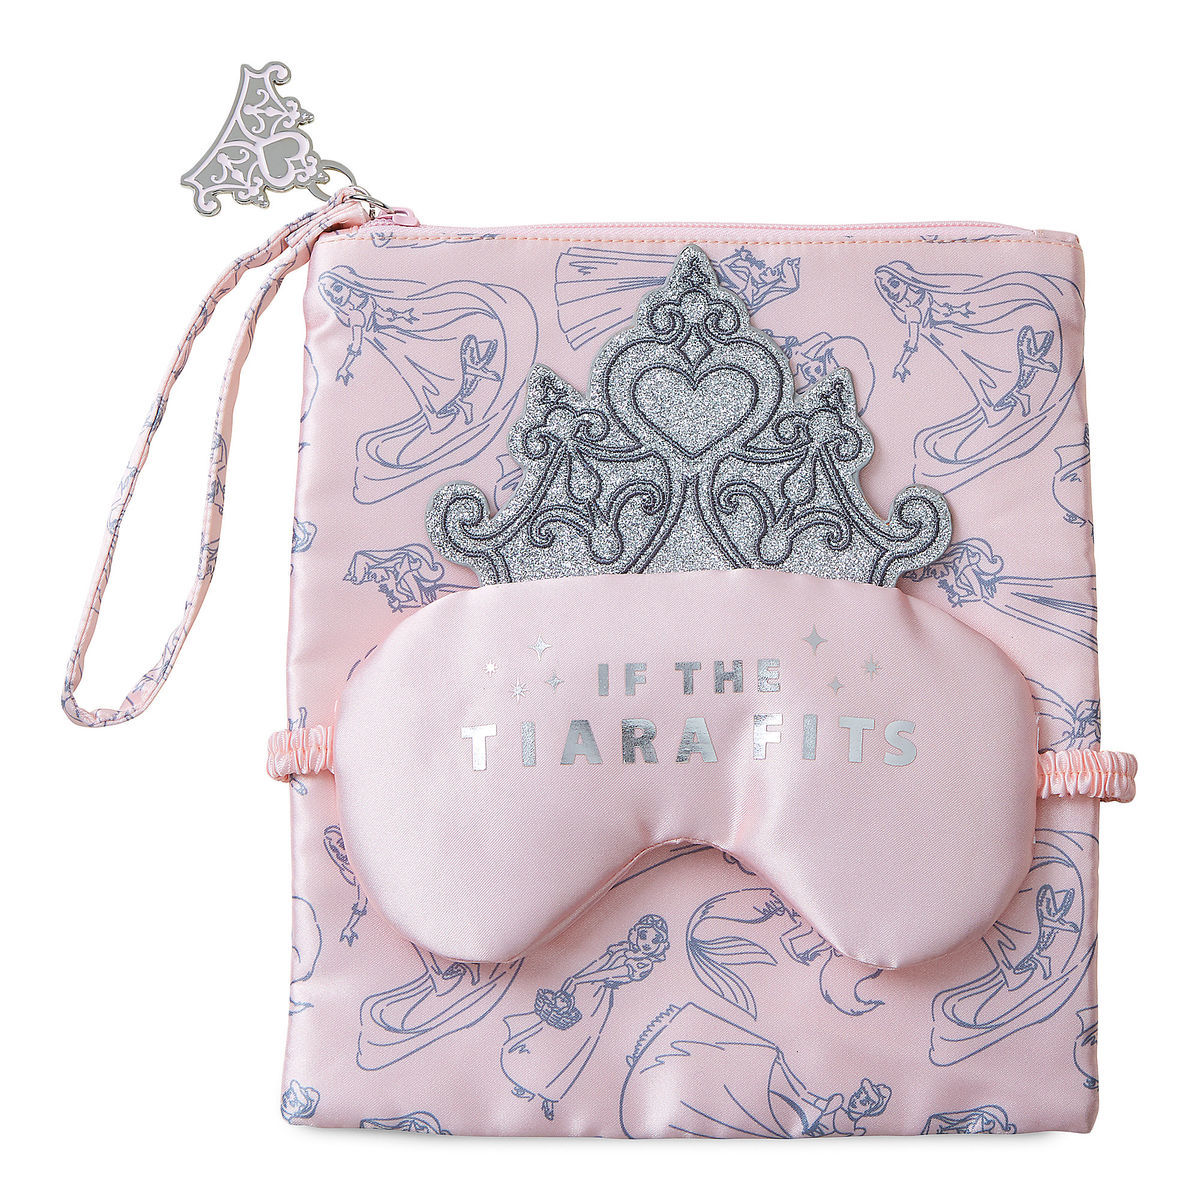 Product Image of Disney Princess Eye Mask with Case for Women   1 481075090